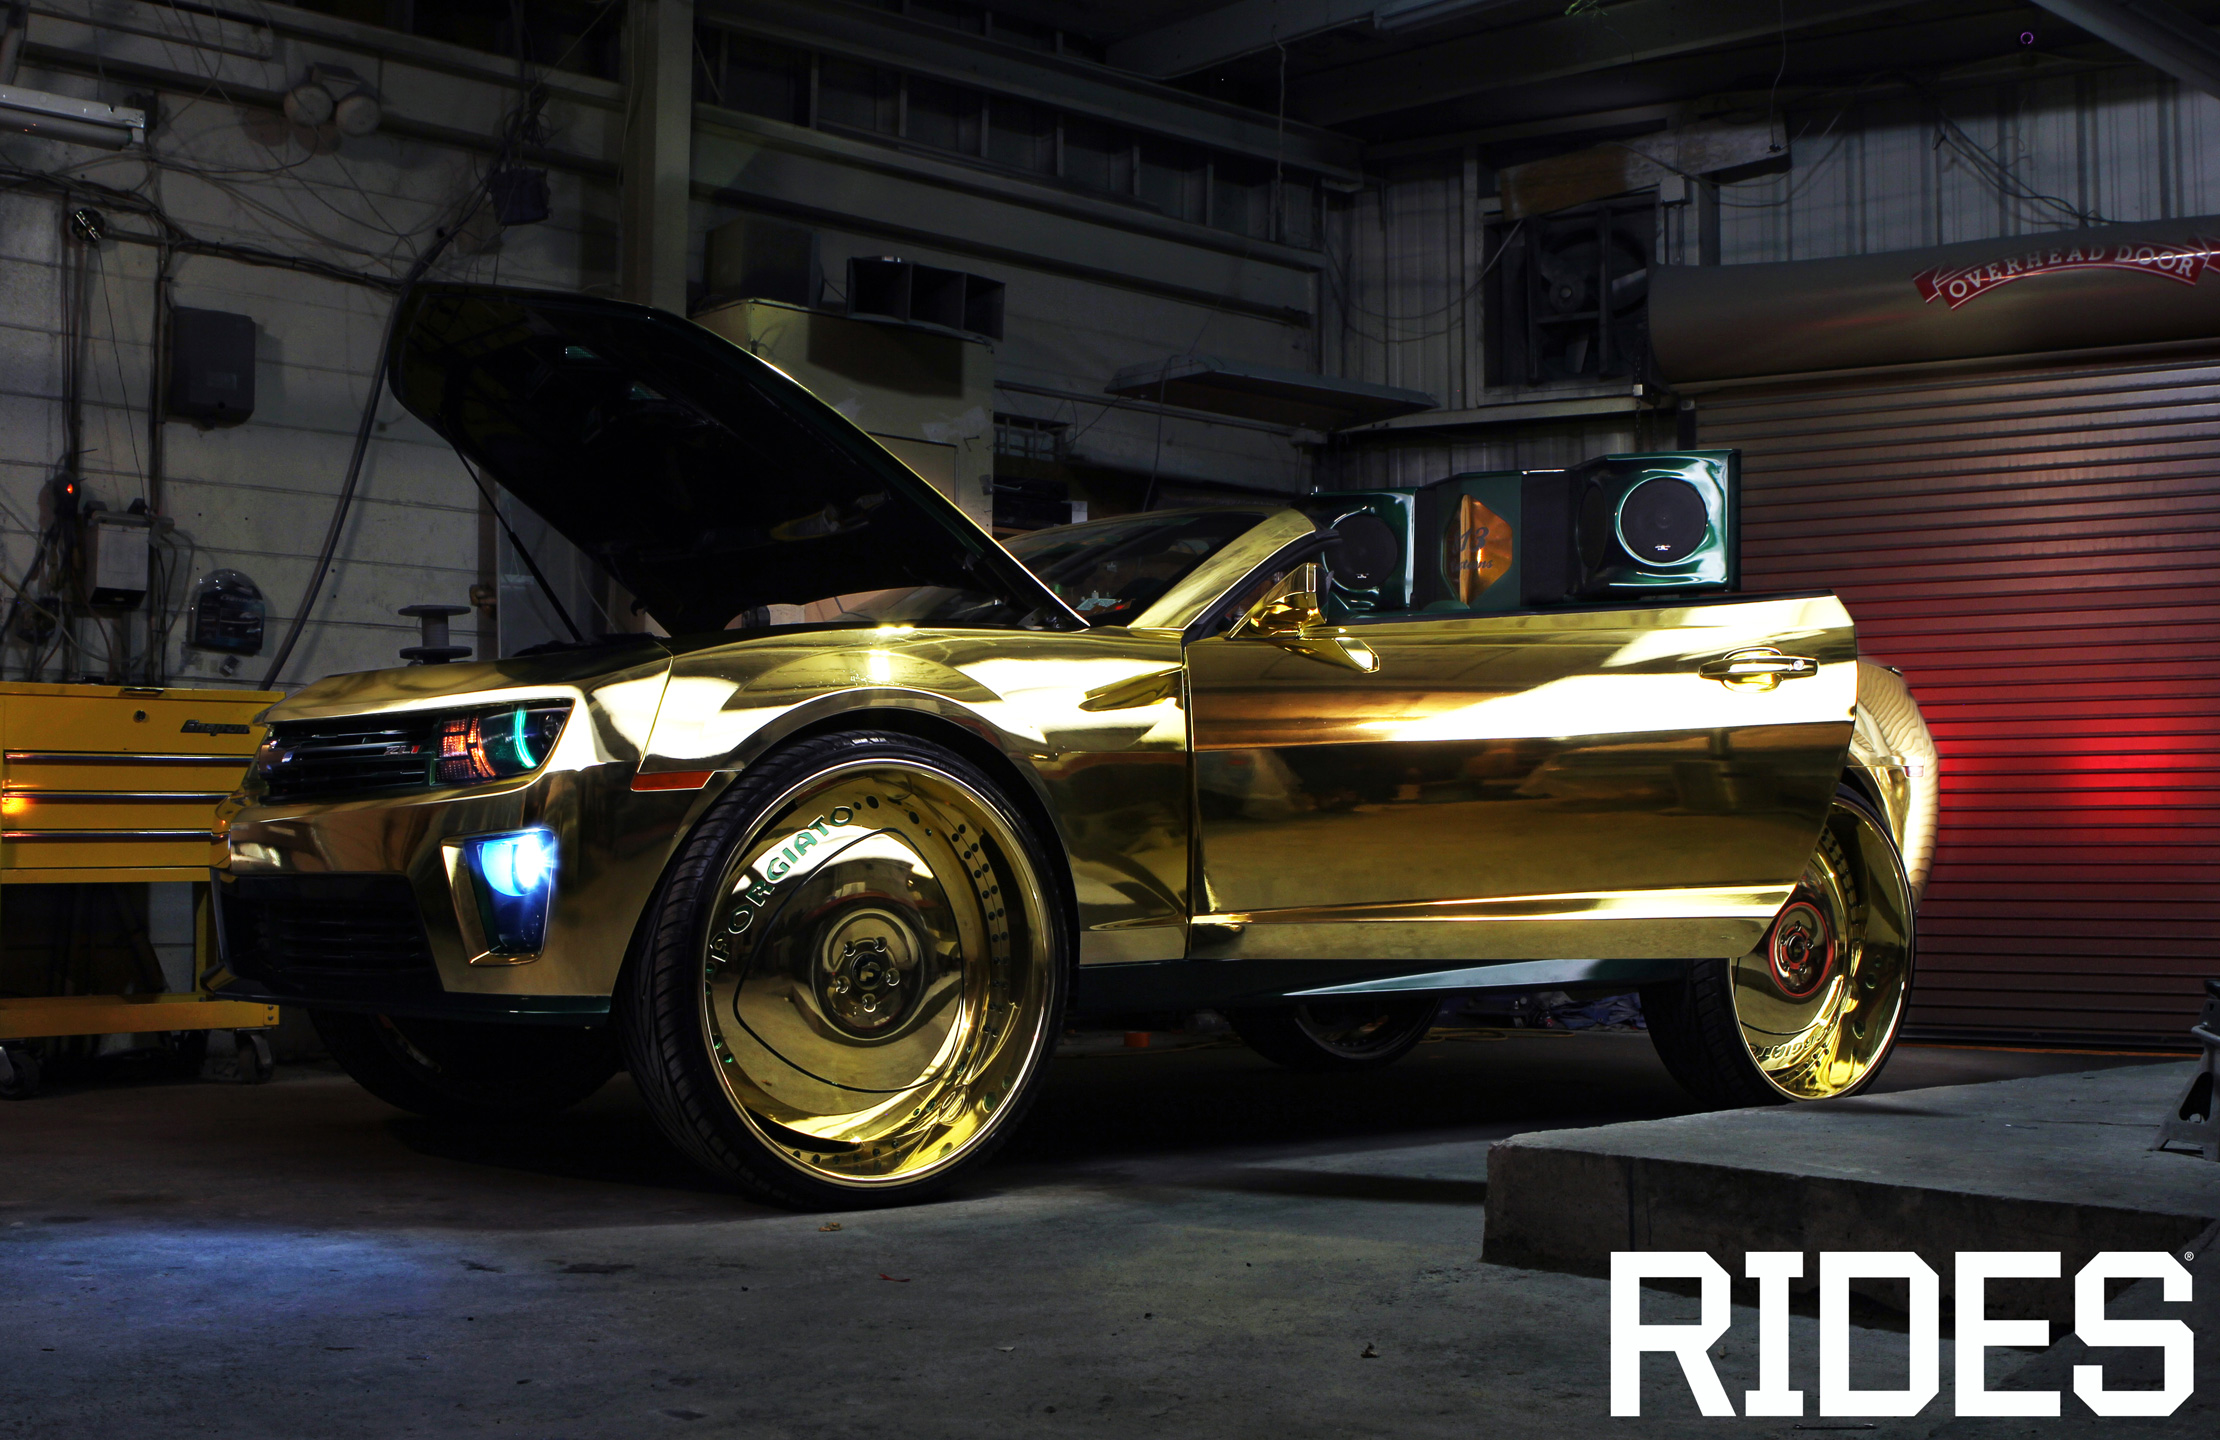 rides gold camaro zl1 king 813 customs linny j chevy chevrolet